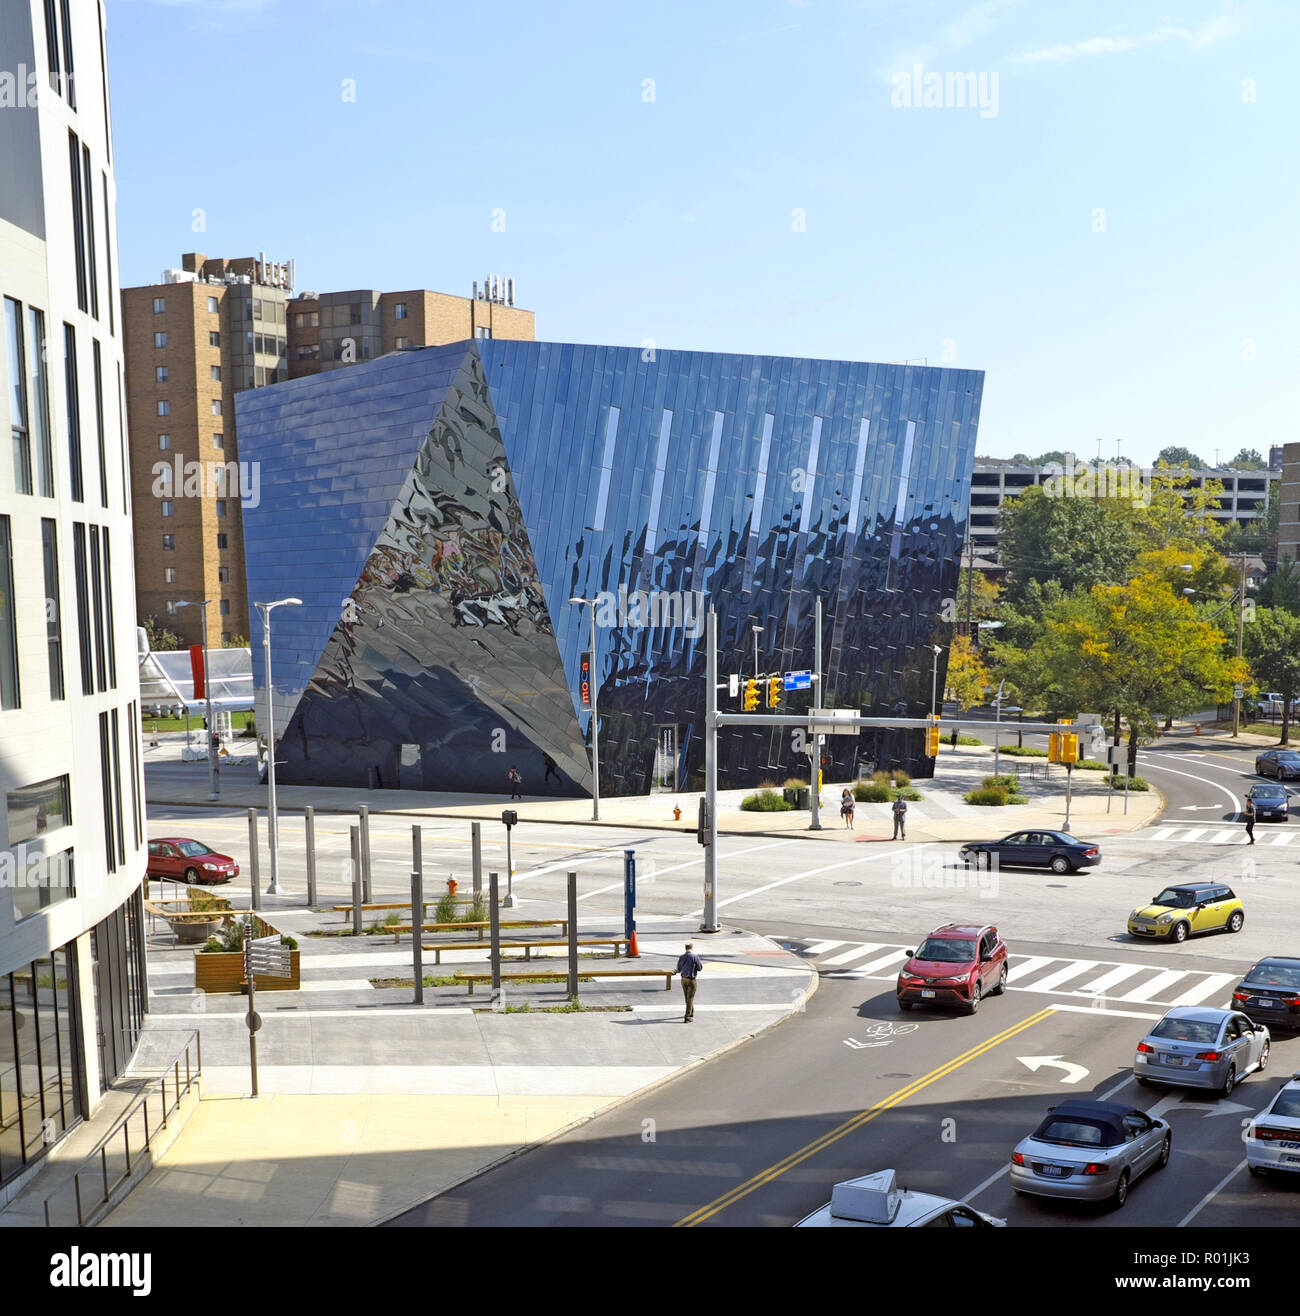 A view of the Cleveland Museum of Contemporary Art, MOCA, in the University Circle neighborhood of Cleveland, Ohio, USA. Stock Photo